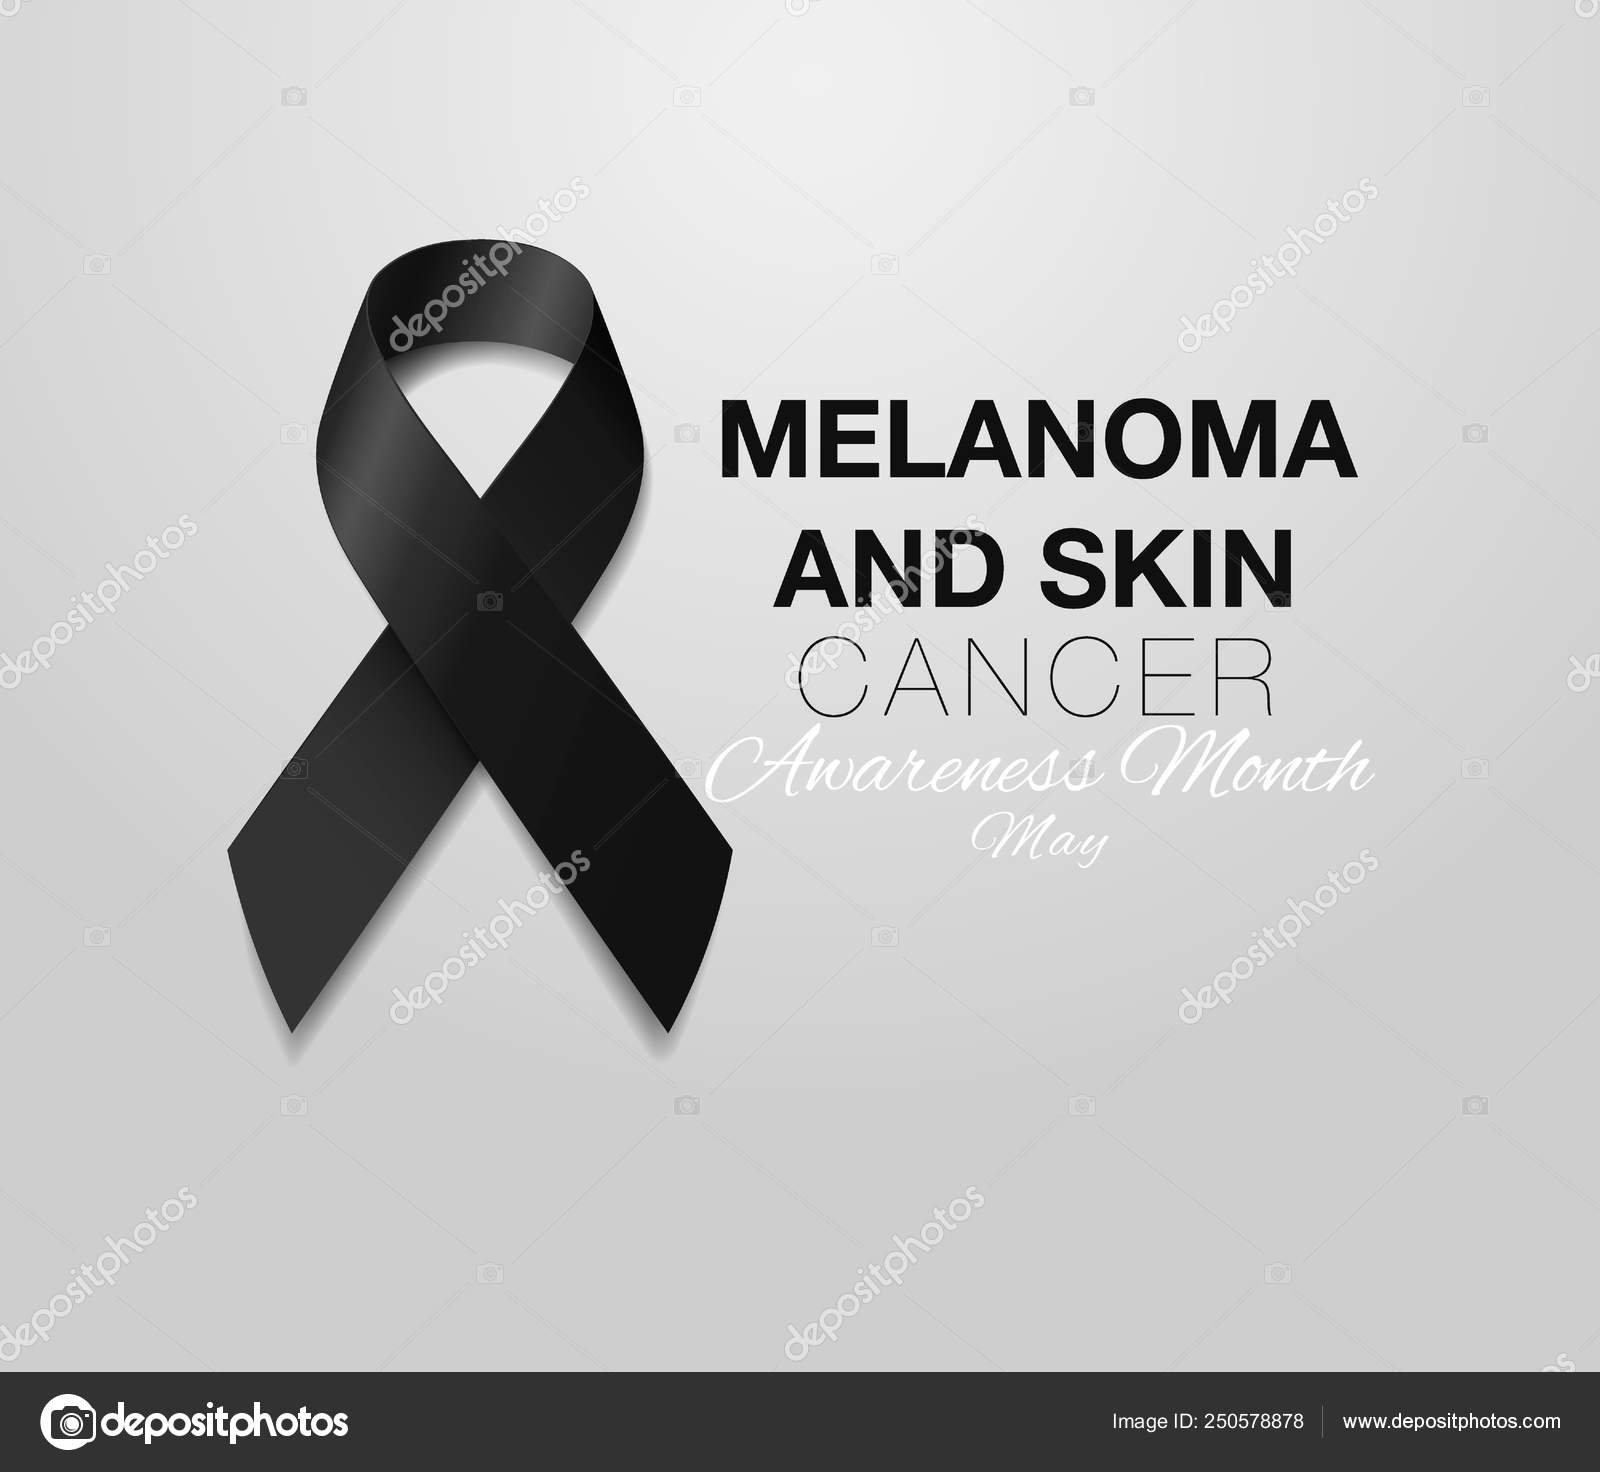 Melanoma And Skin Cancer Awareness Calligraphy Poster Design Realistic Black Ribbon May Is Cancer Awareness Month Vector Stock Vector C Irkus Life Gmail Com 250578878